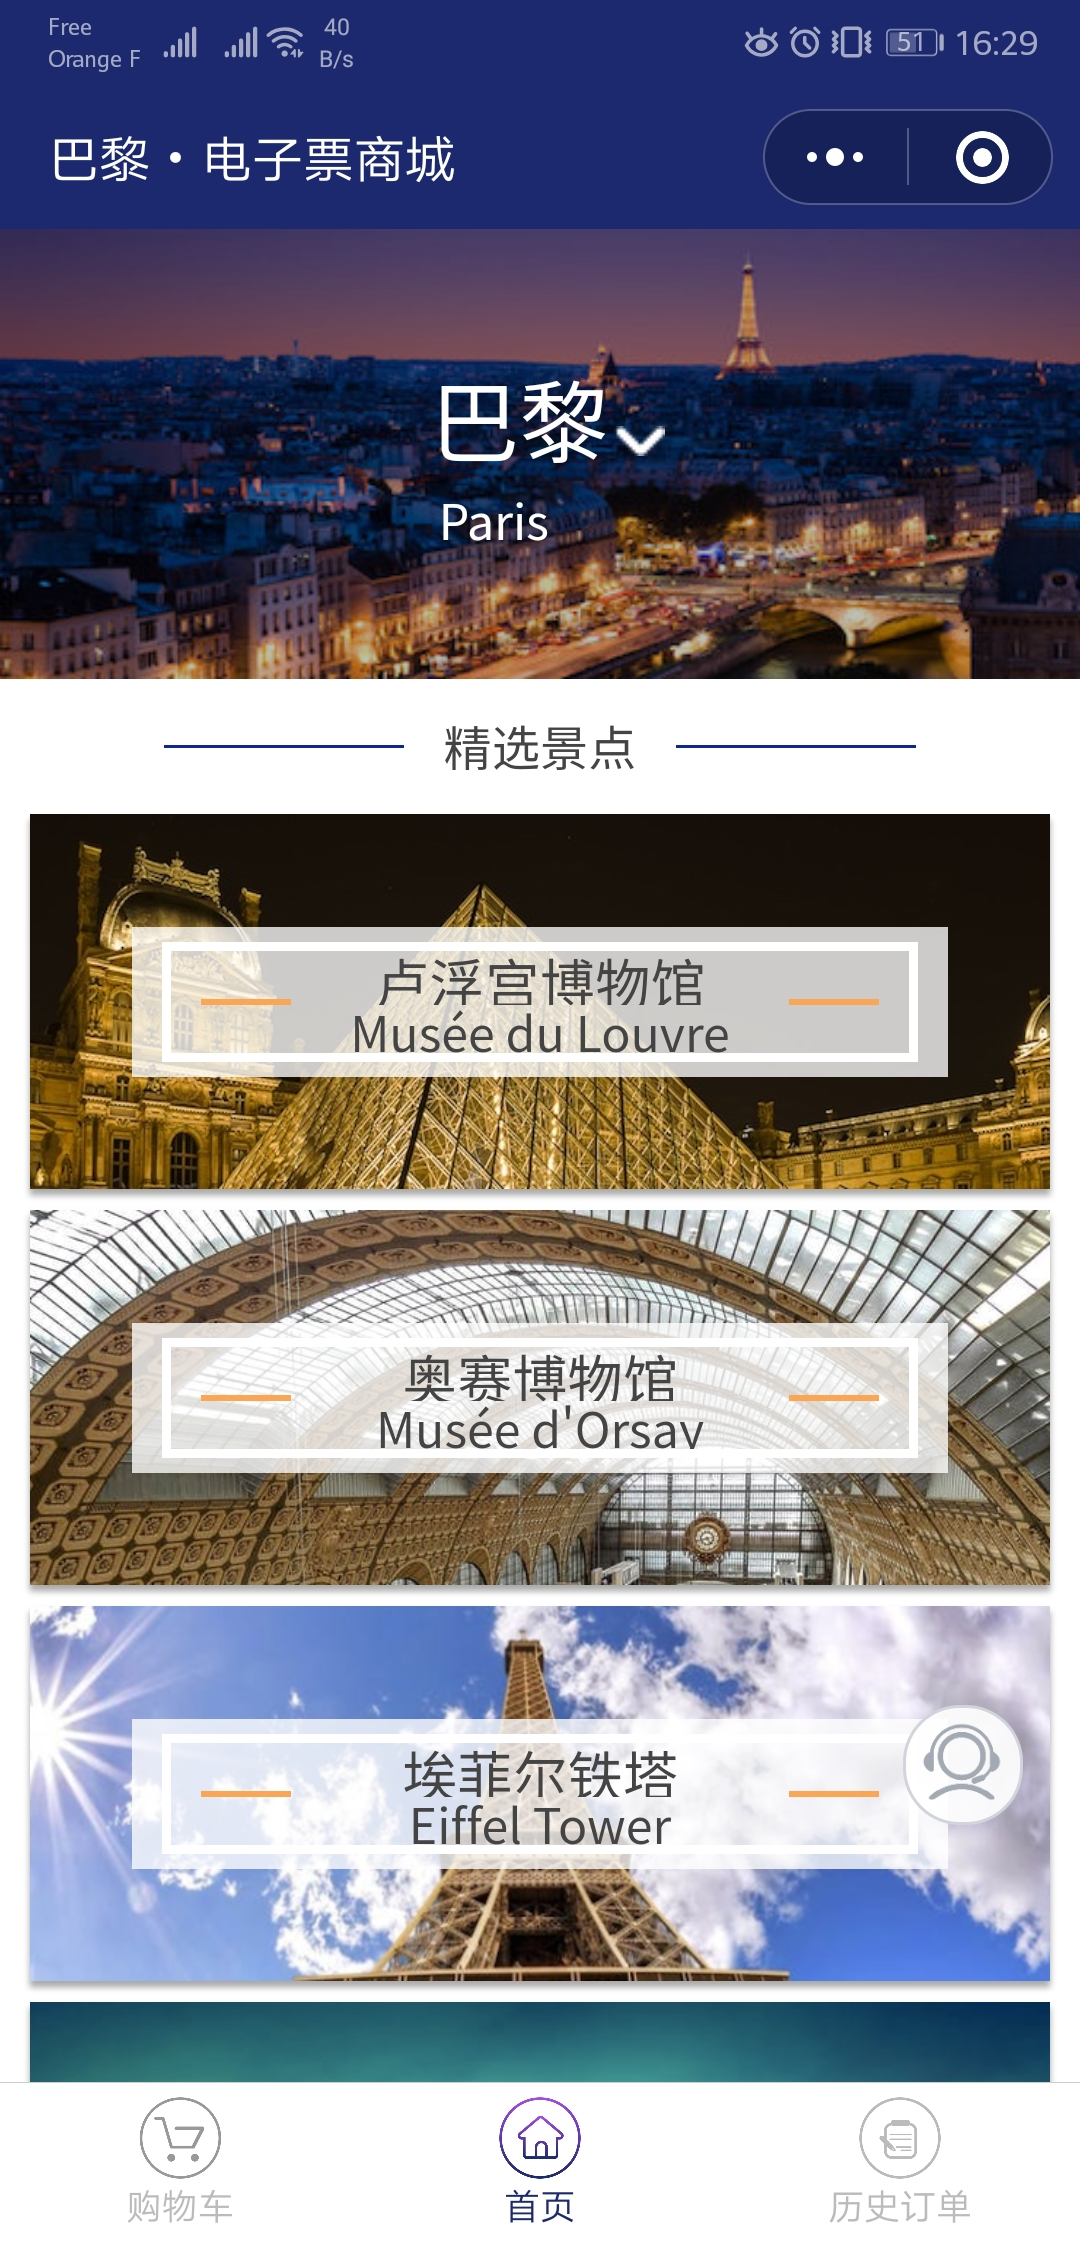 WeChat Travel Experience mini-program WeChat Ticketing mini-program